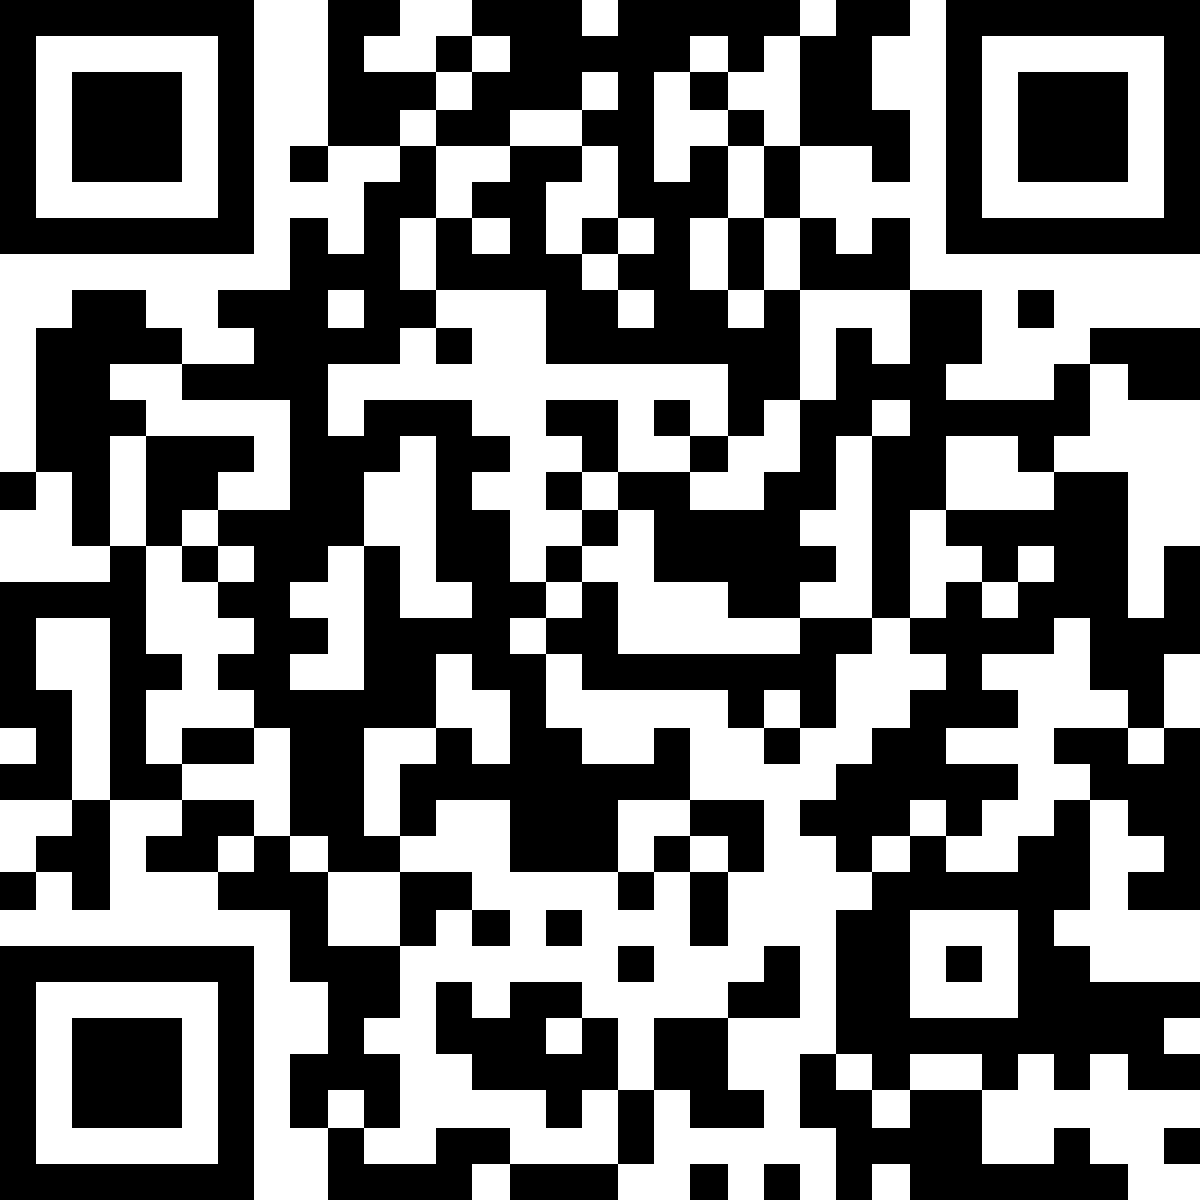 QR code to Submit a Video Review